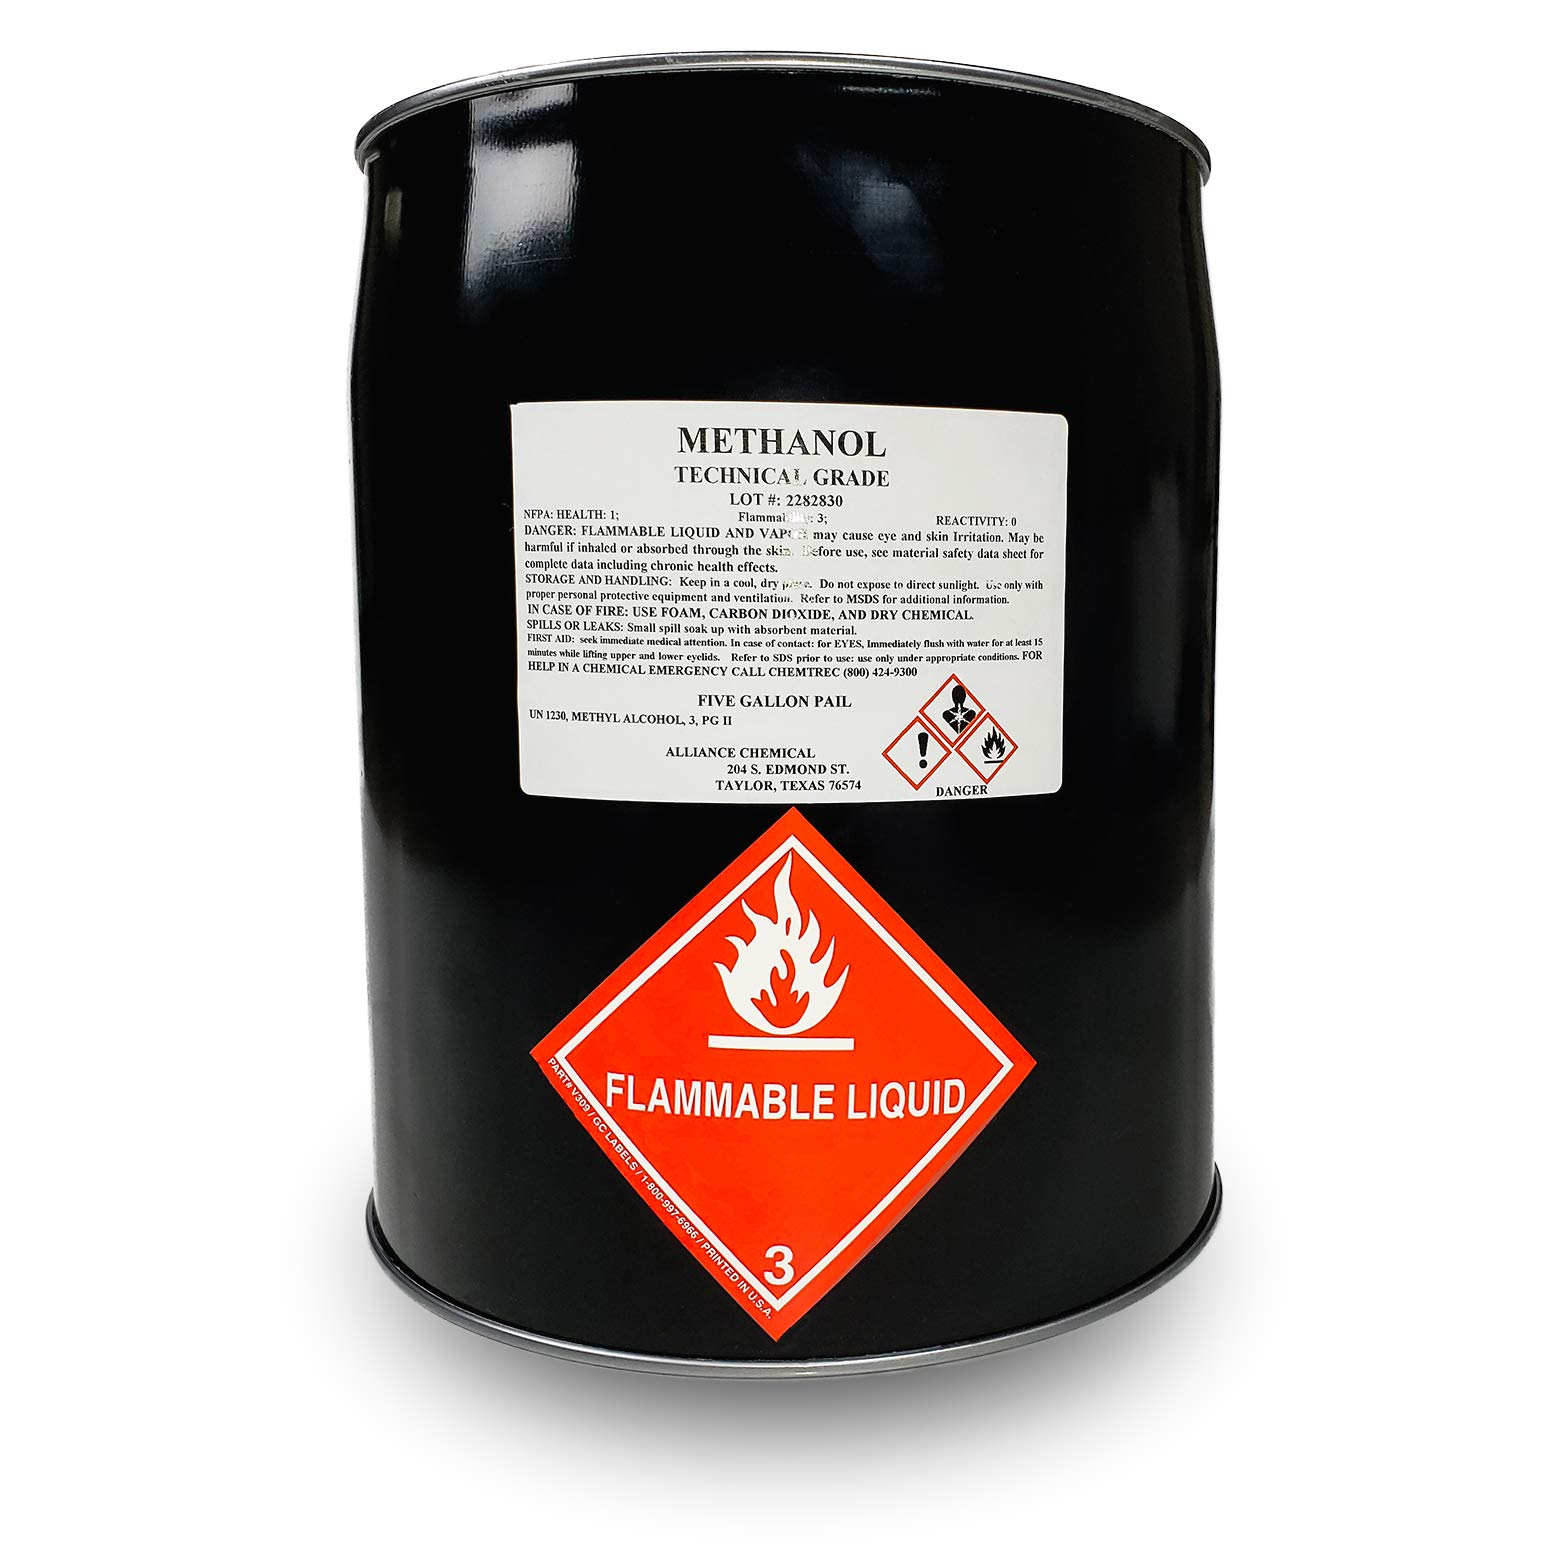 Methanol Technical Grade - Five Gallon Metal Pail